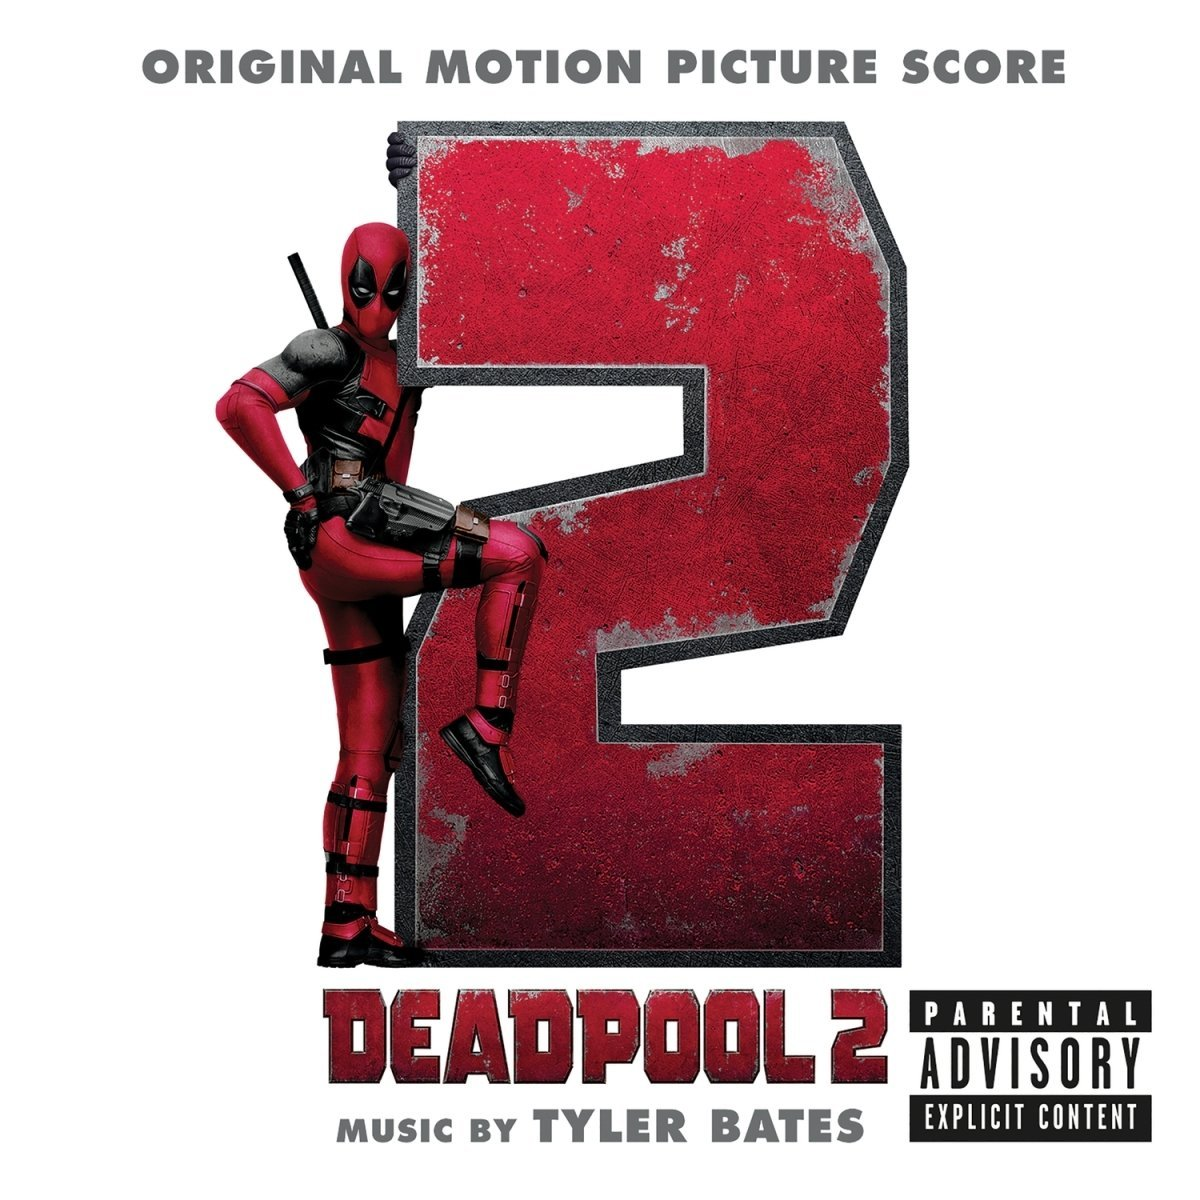 'Deadpool 2' is the first film score in history to receive a parental advisory warning https://t.co/vgZ2zIZJSe https://t.co/9HncnIAPsP